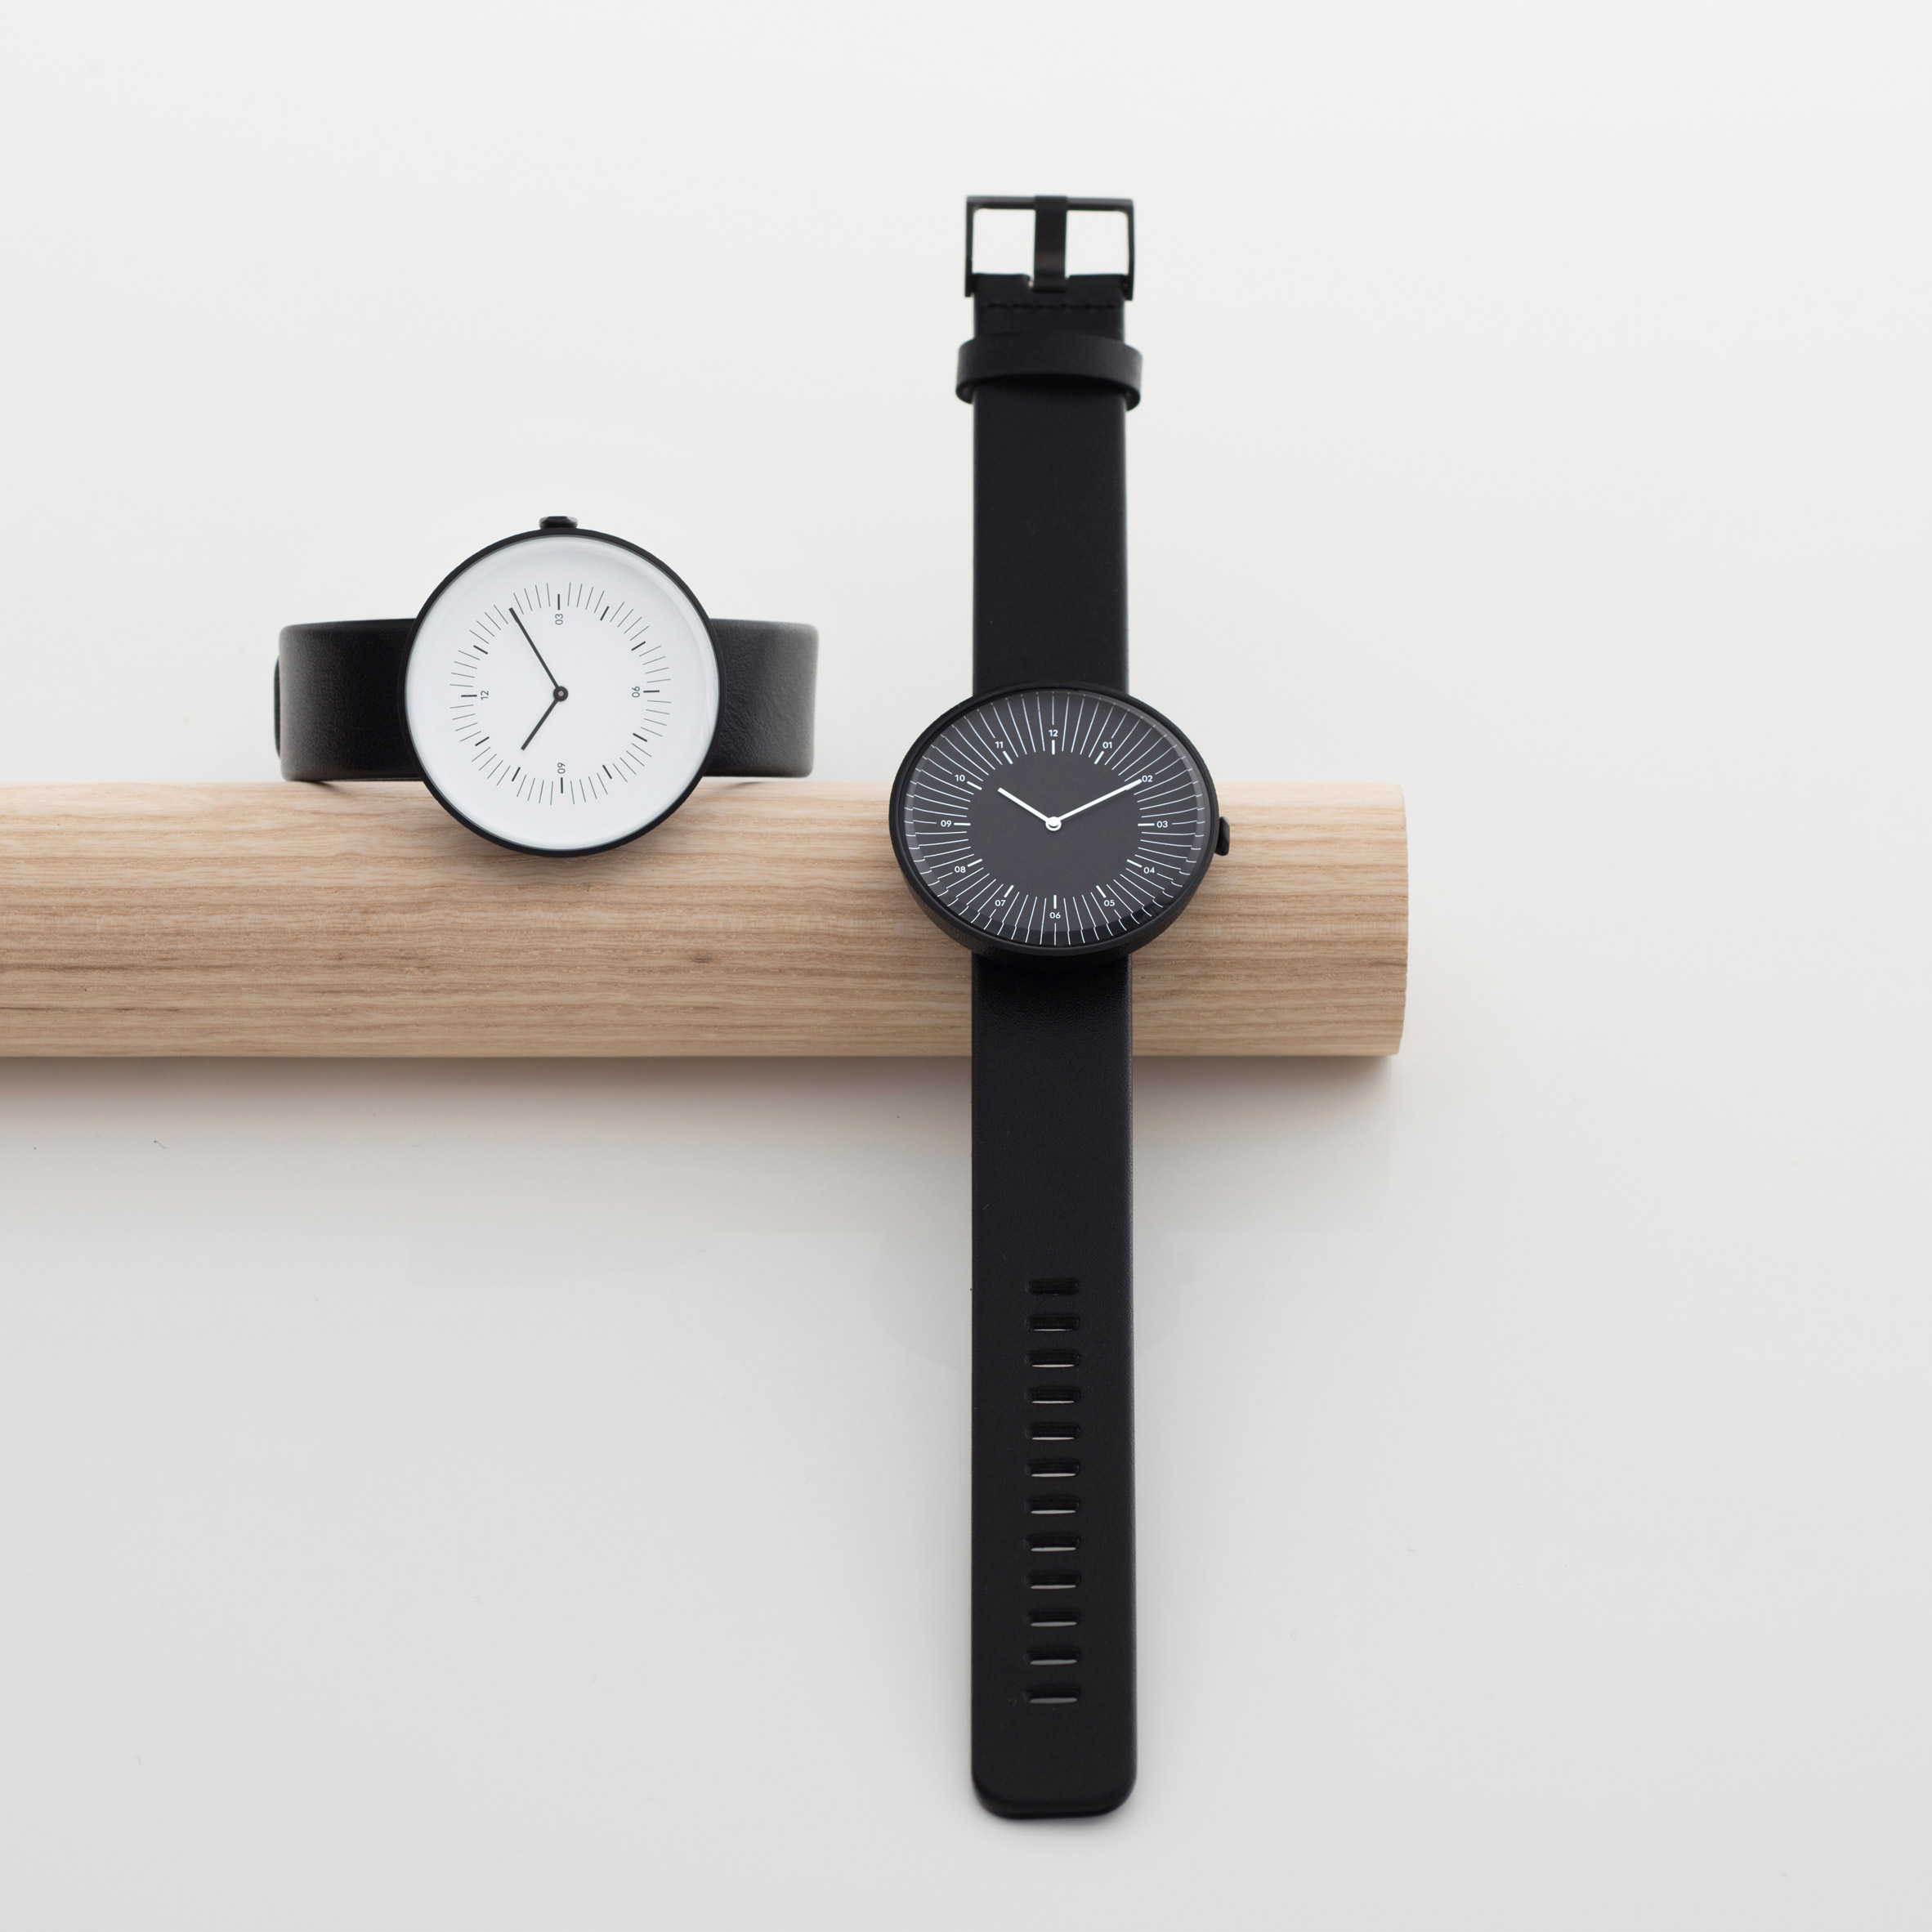 Enter Dezeen's #milanogram2017 competition to win a £500 Dezeen Watch Store voucher